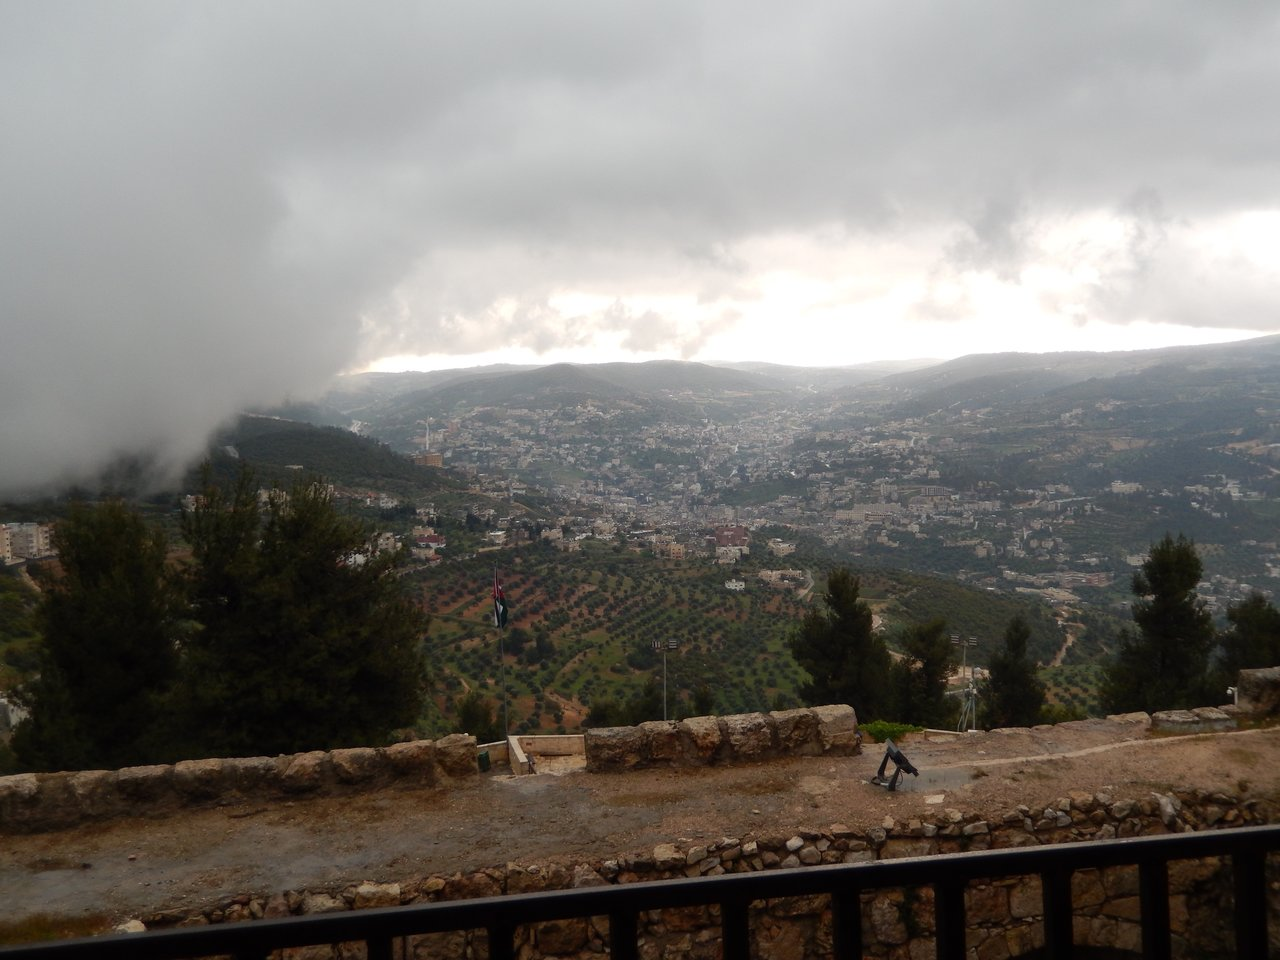 Looking out at the view from Ajloun Castle and then the cloud just rolled across and obscured it! | Photo taken by Linley V